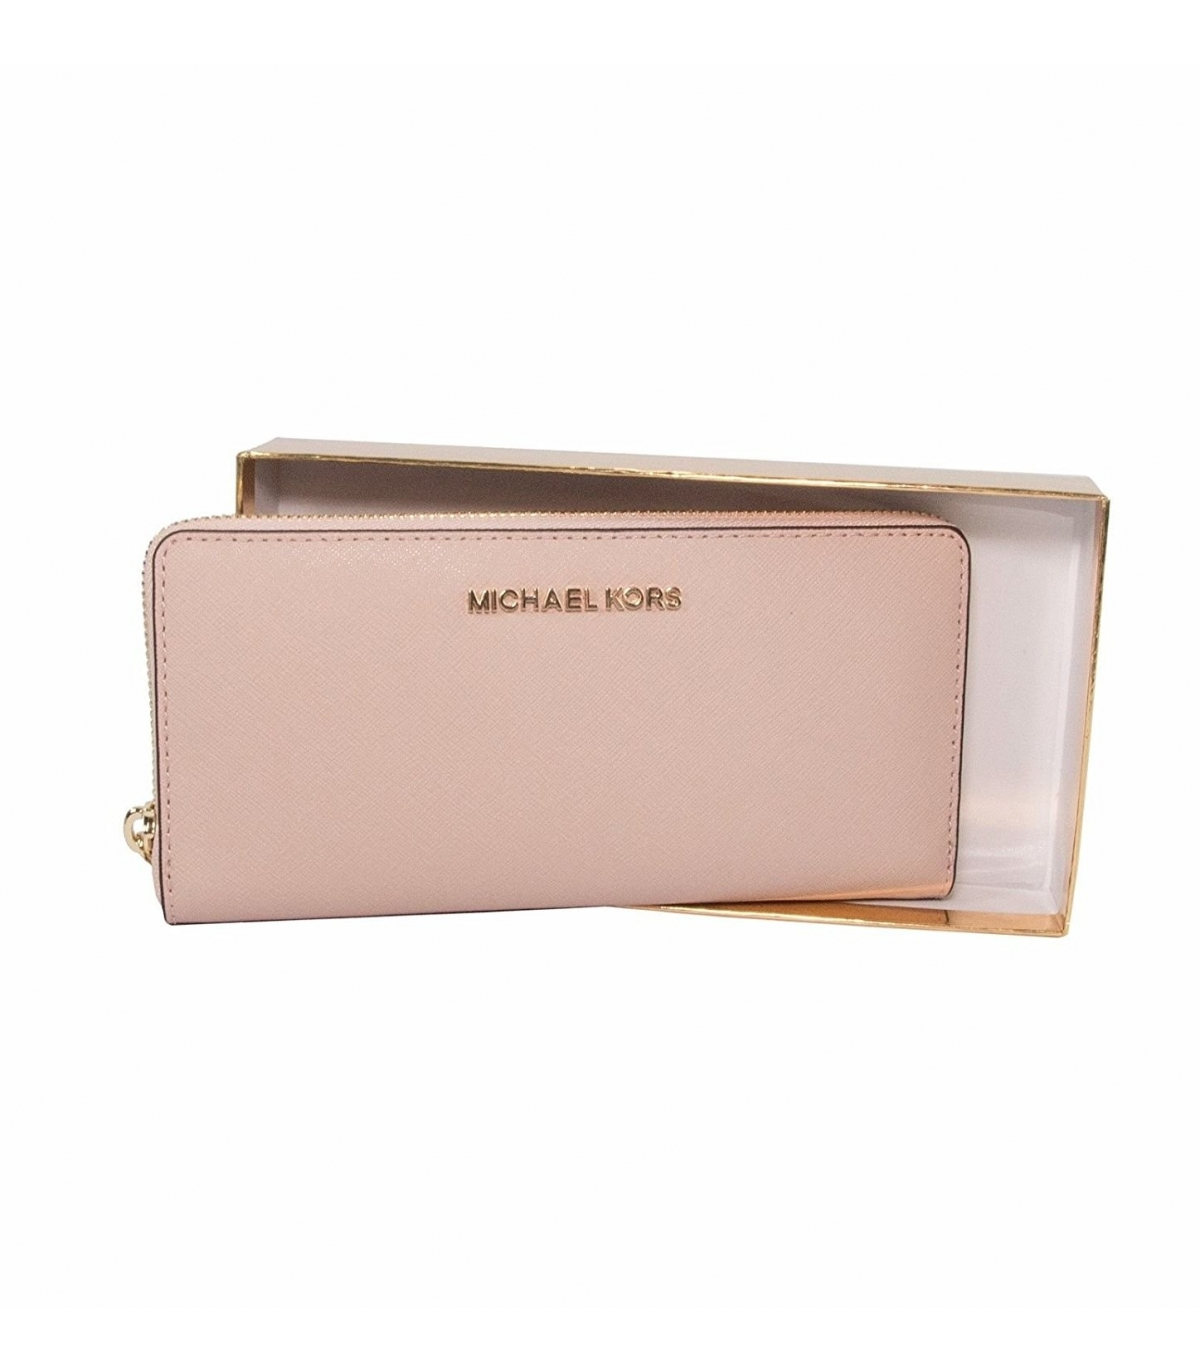 4014969a7e6c Michael Kors Giftables Jet Set Zip Around Continental Saffiano Leather  Wallet Clutch